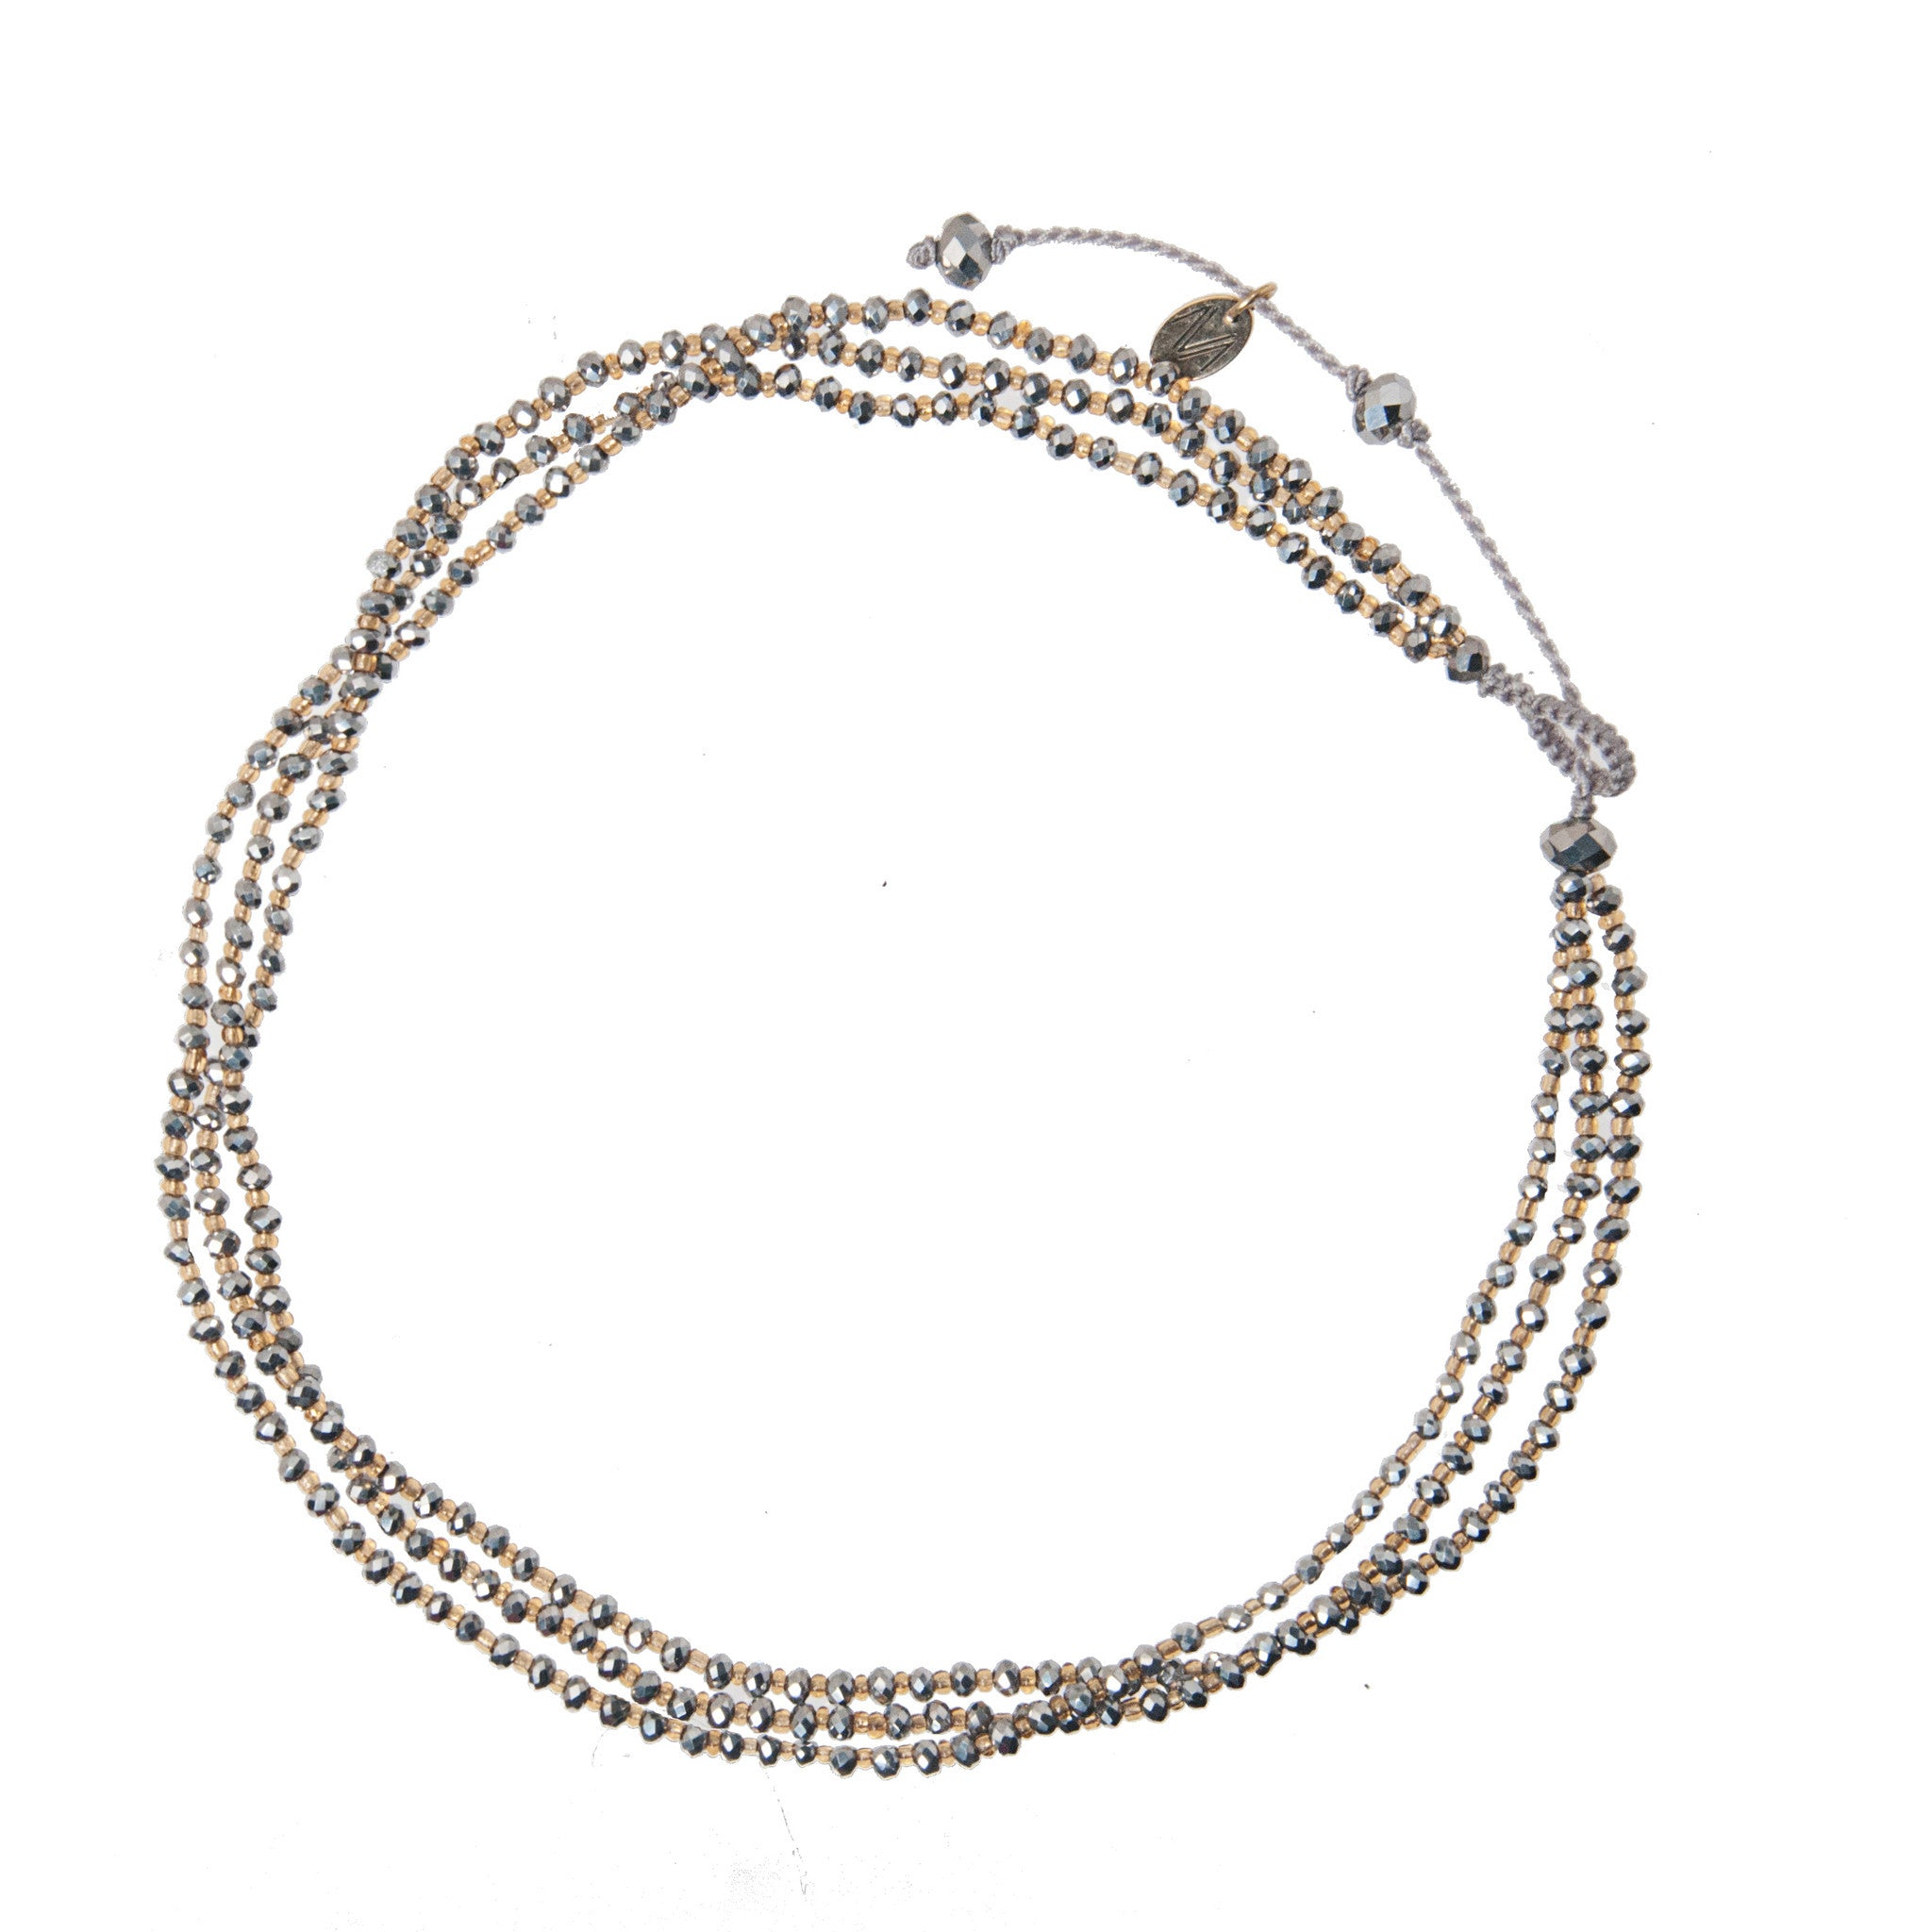 Adjustable Choker made of ranges of crystal beads silver